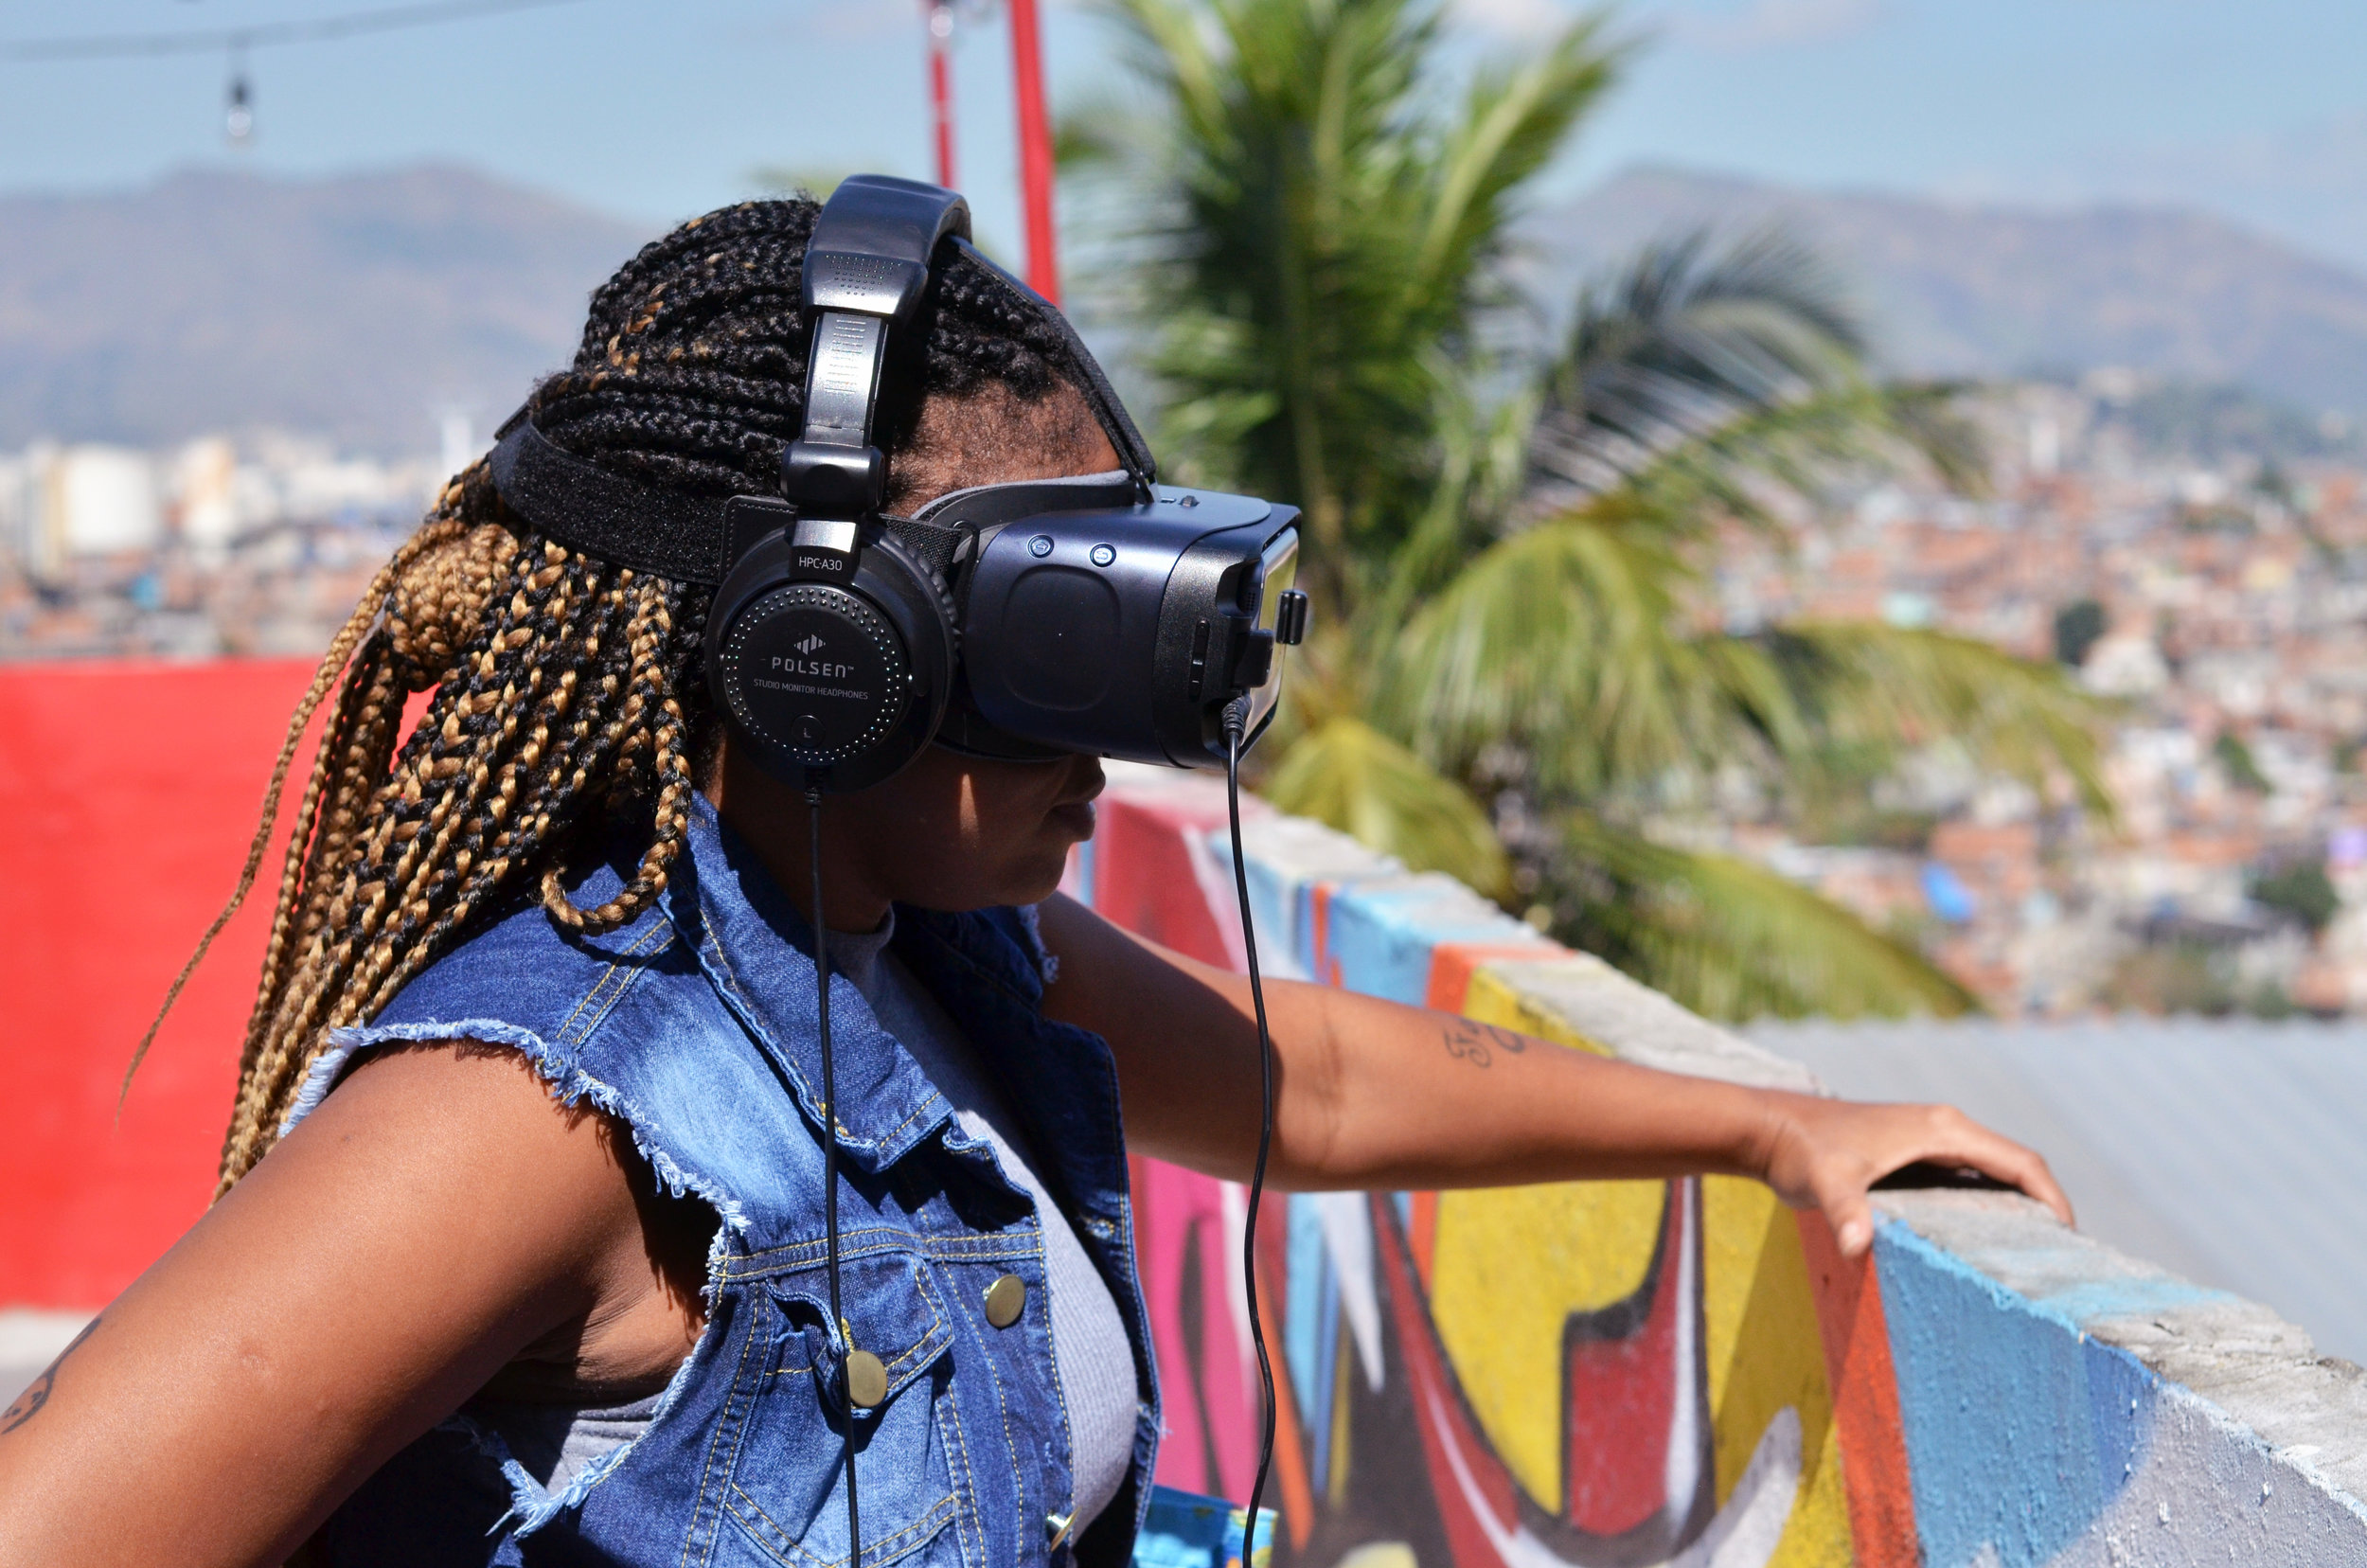 My people, Our Stories: Brazil - Brazilian filmmakers produce an immersive 360º series on the most pressing social and political issues gripping Rio de Janeiro ahead of the country's 2018 presidential election.